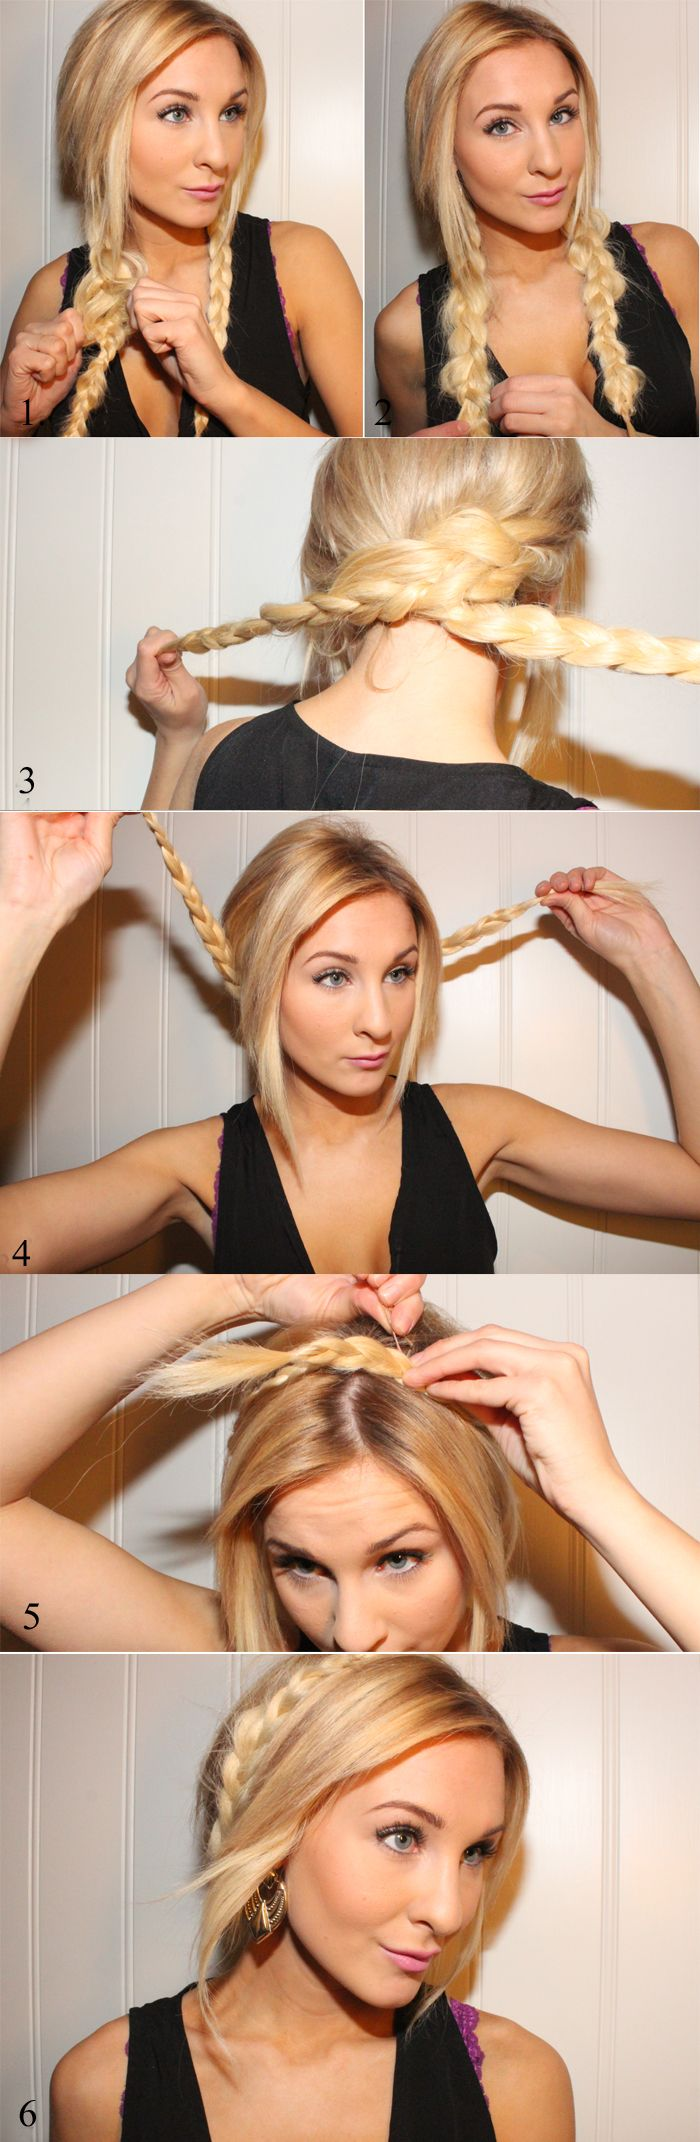 Nicole richieus braided updo updo cute updo and my hair